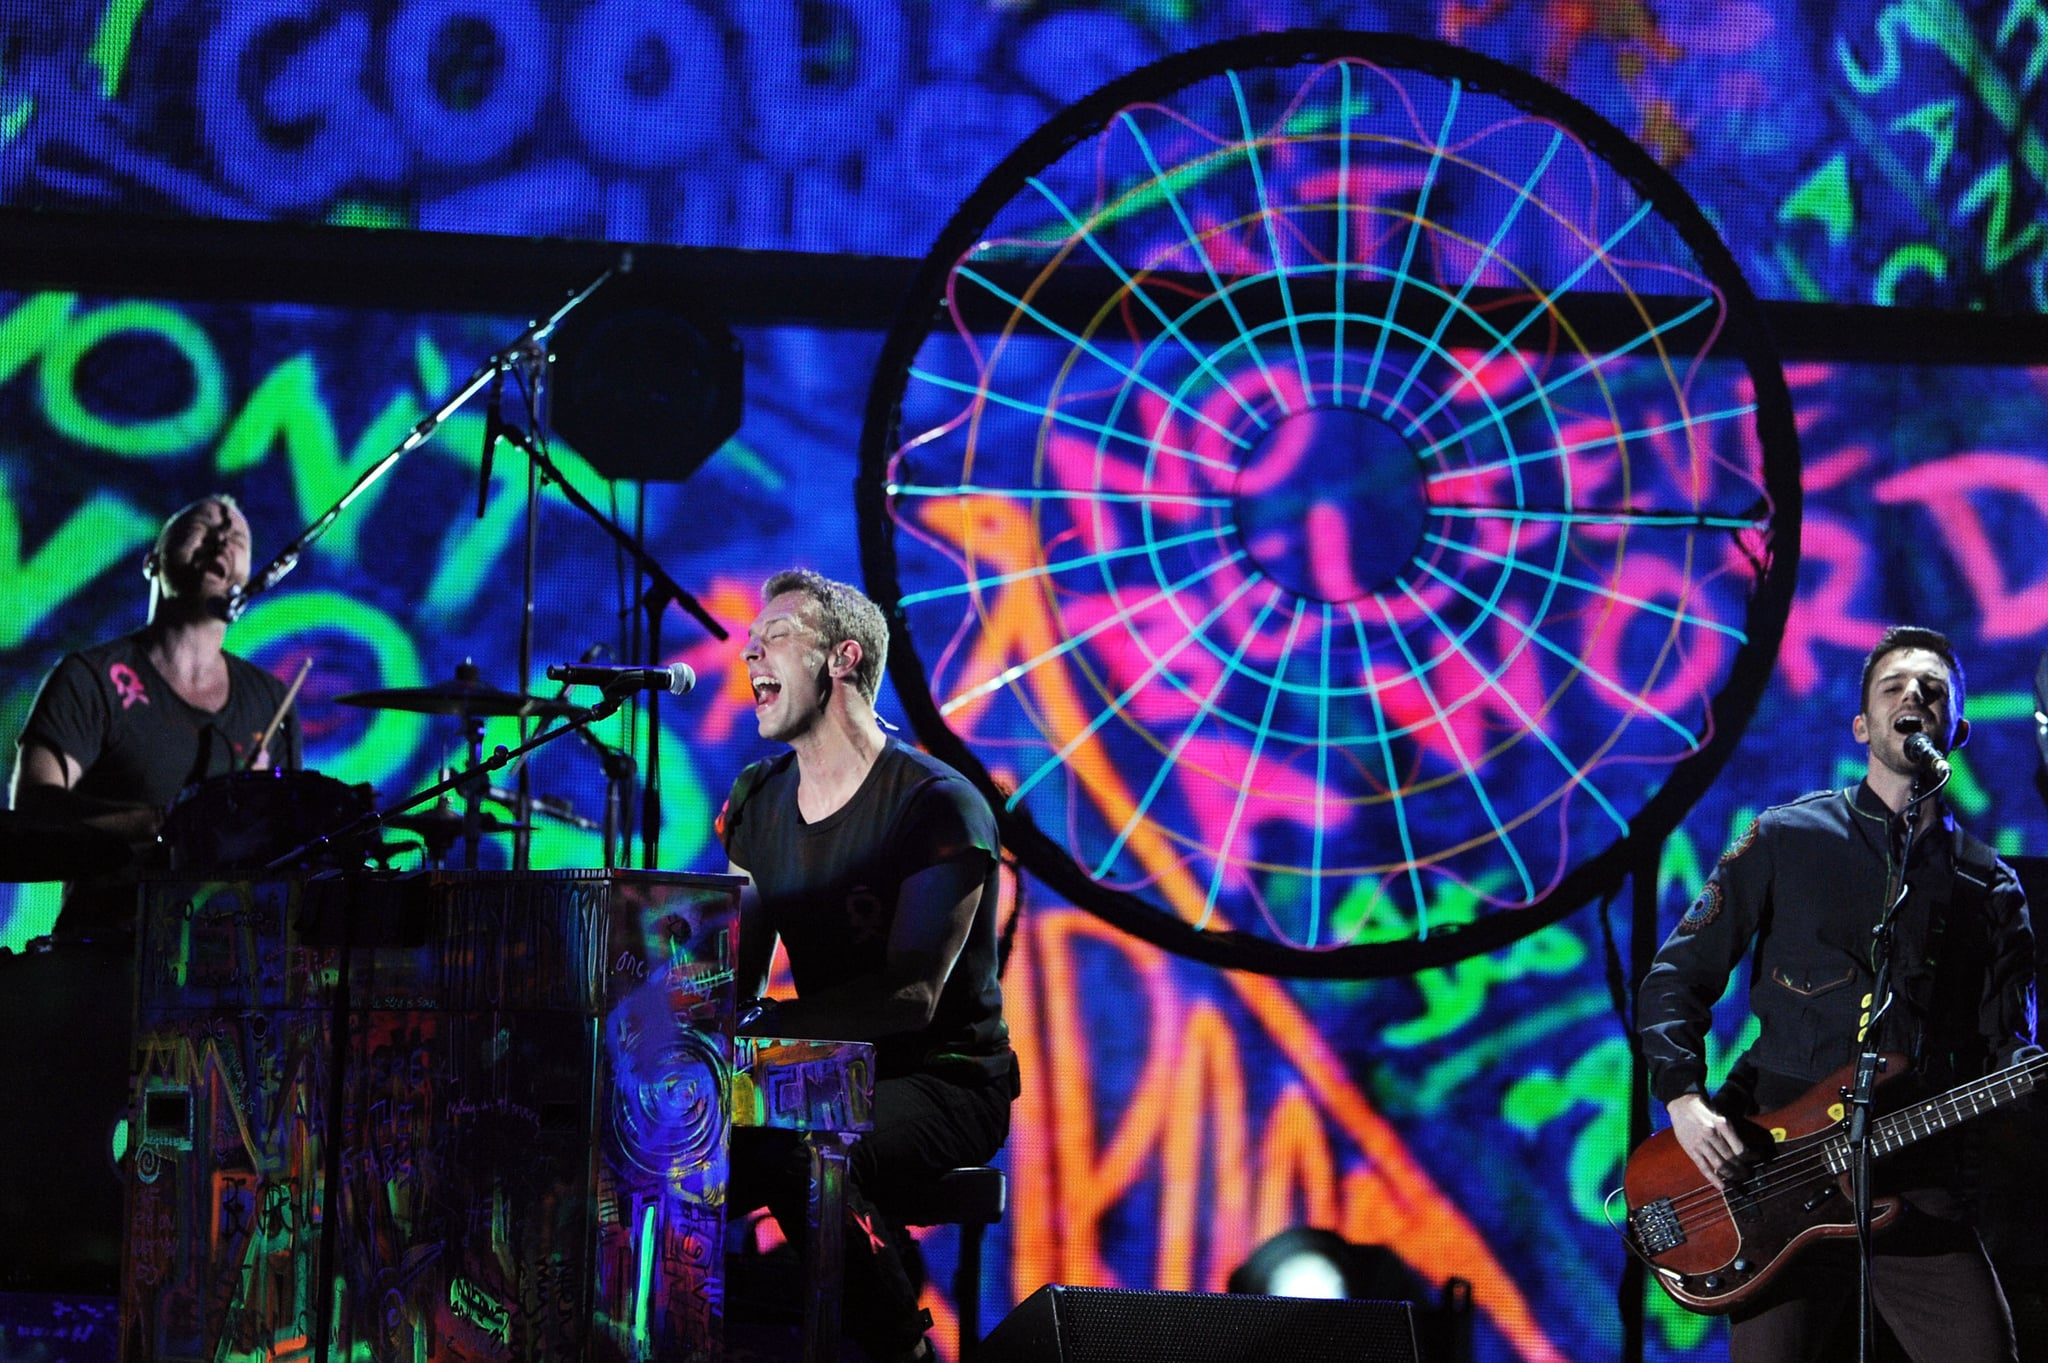 Chris Martin performed at the Grammys.